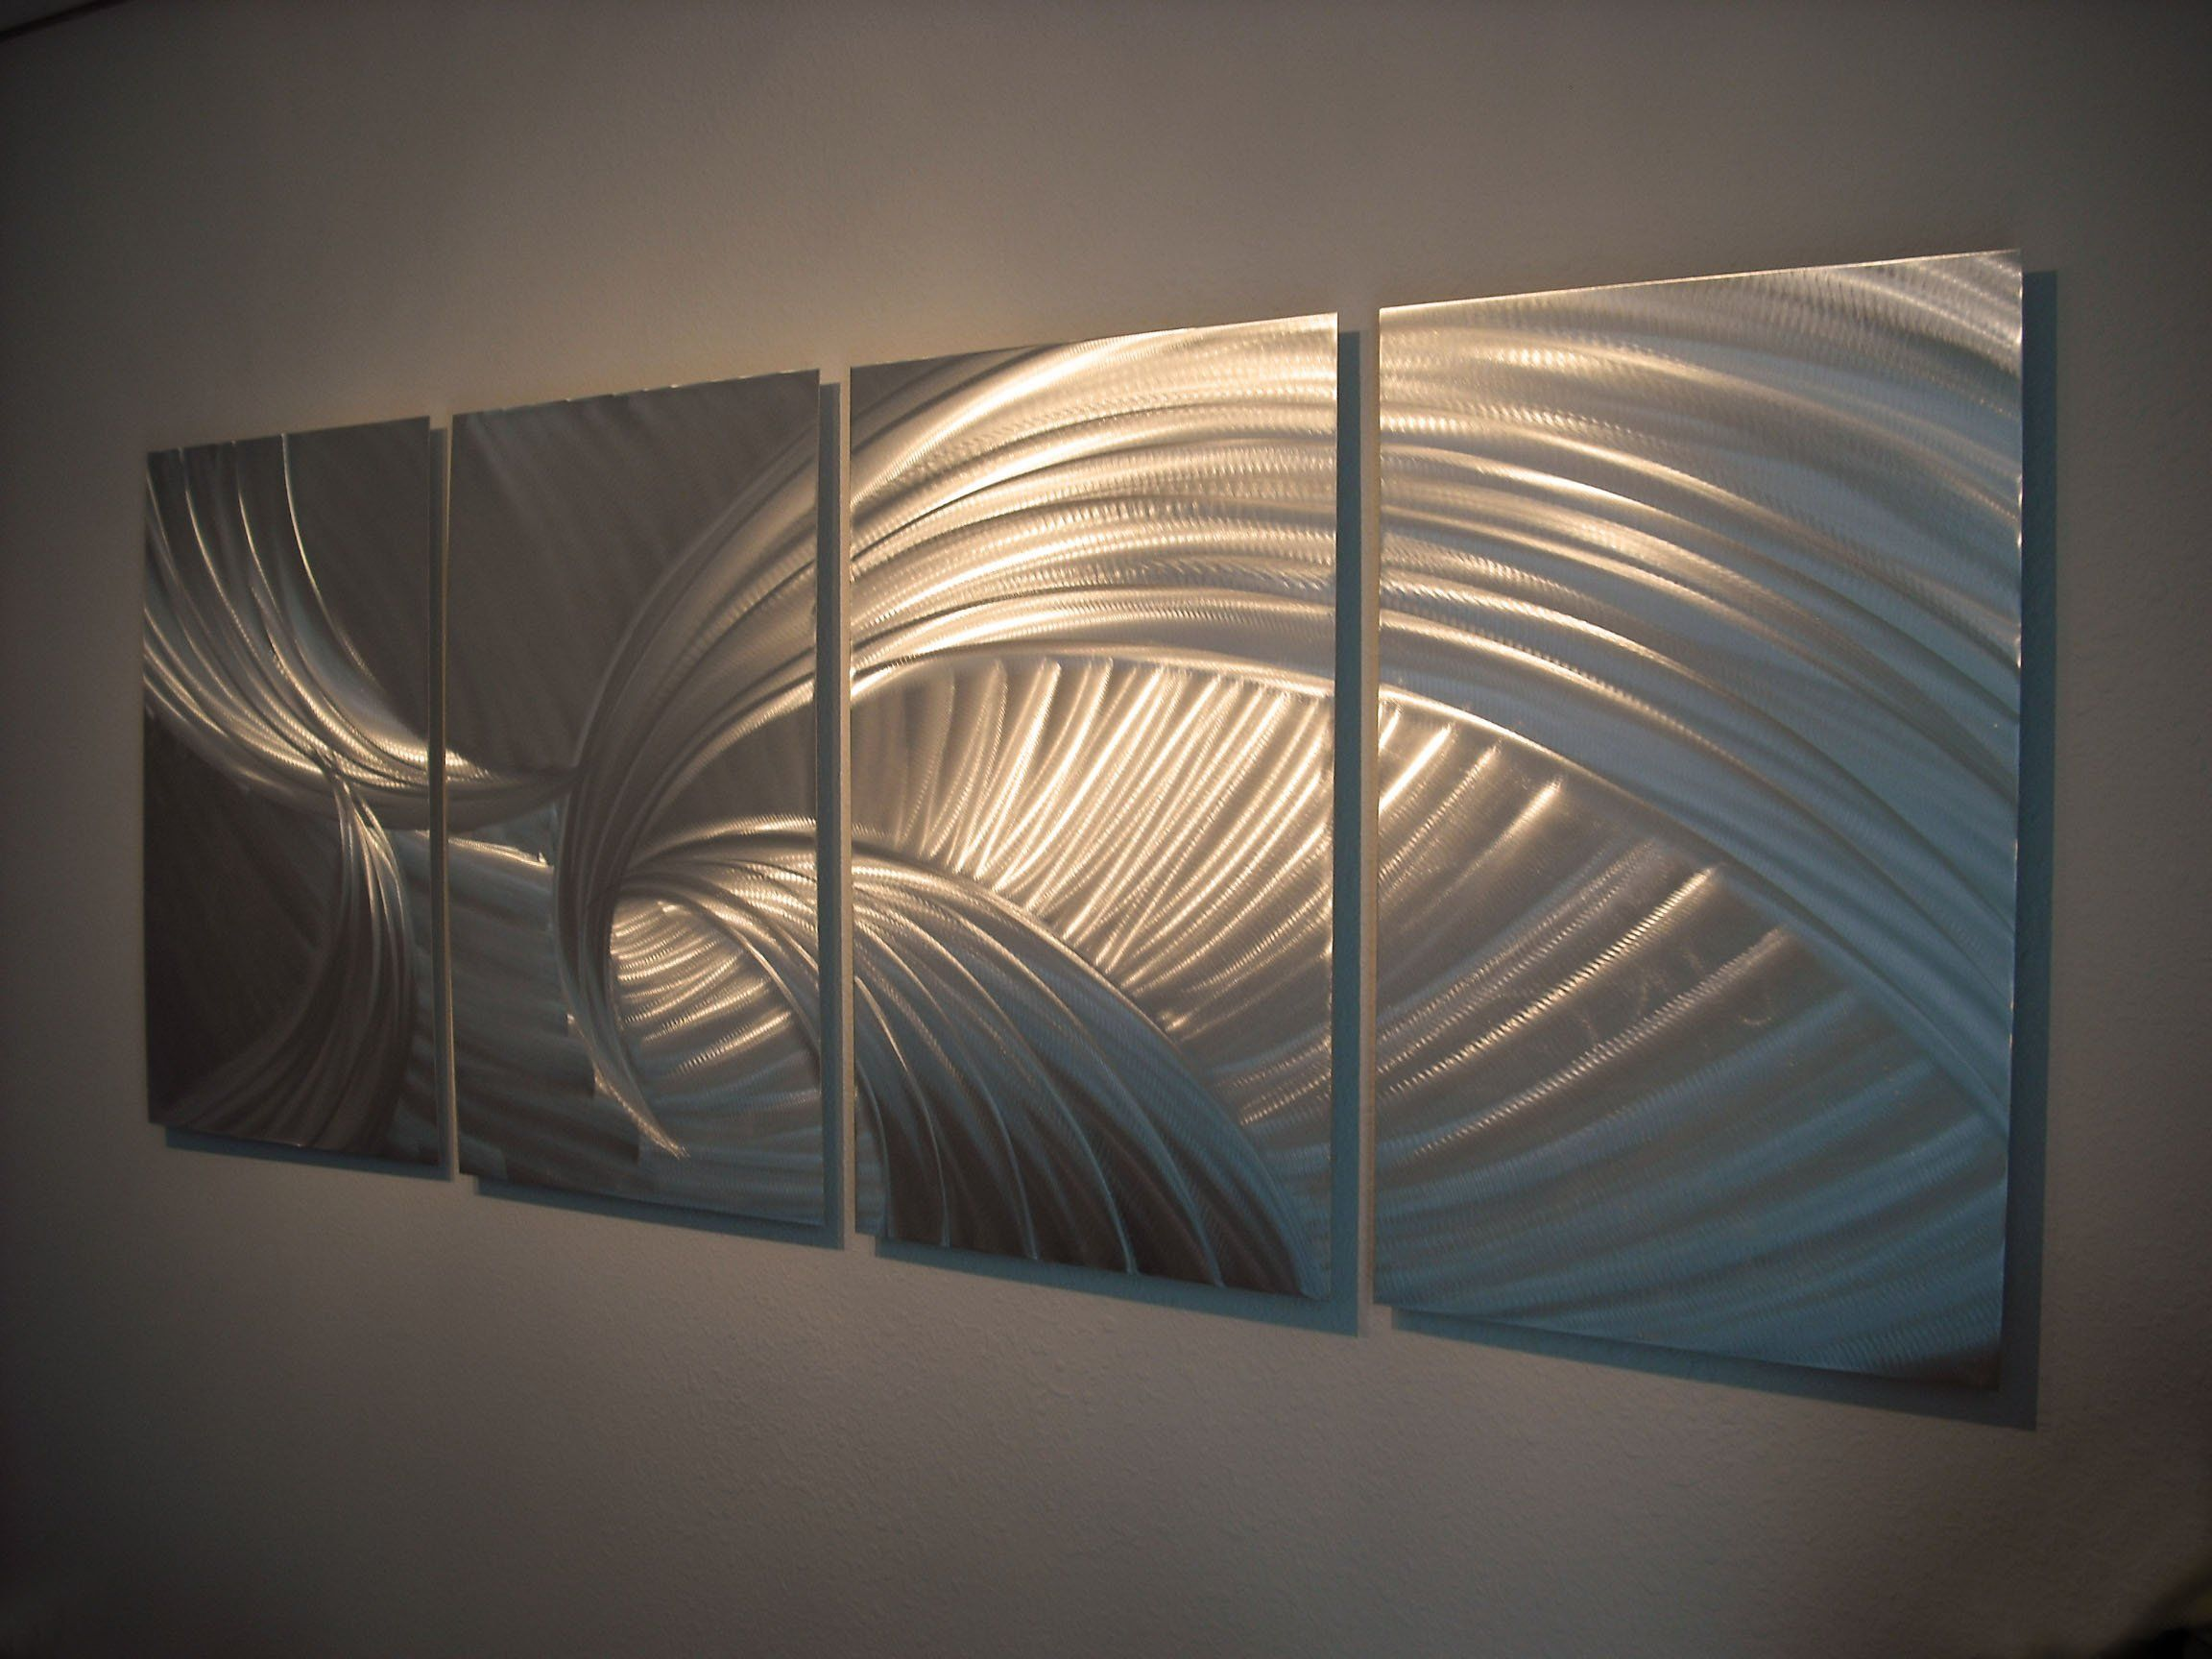 Metal wall art modern home decor abstract wall sculpture metal wall art modern home decor abstract wall sculpture contemporary tempest amipublicfo Choice Image